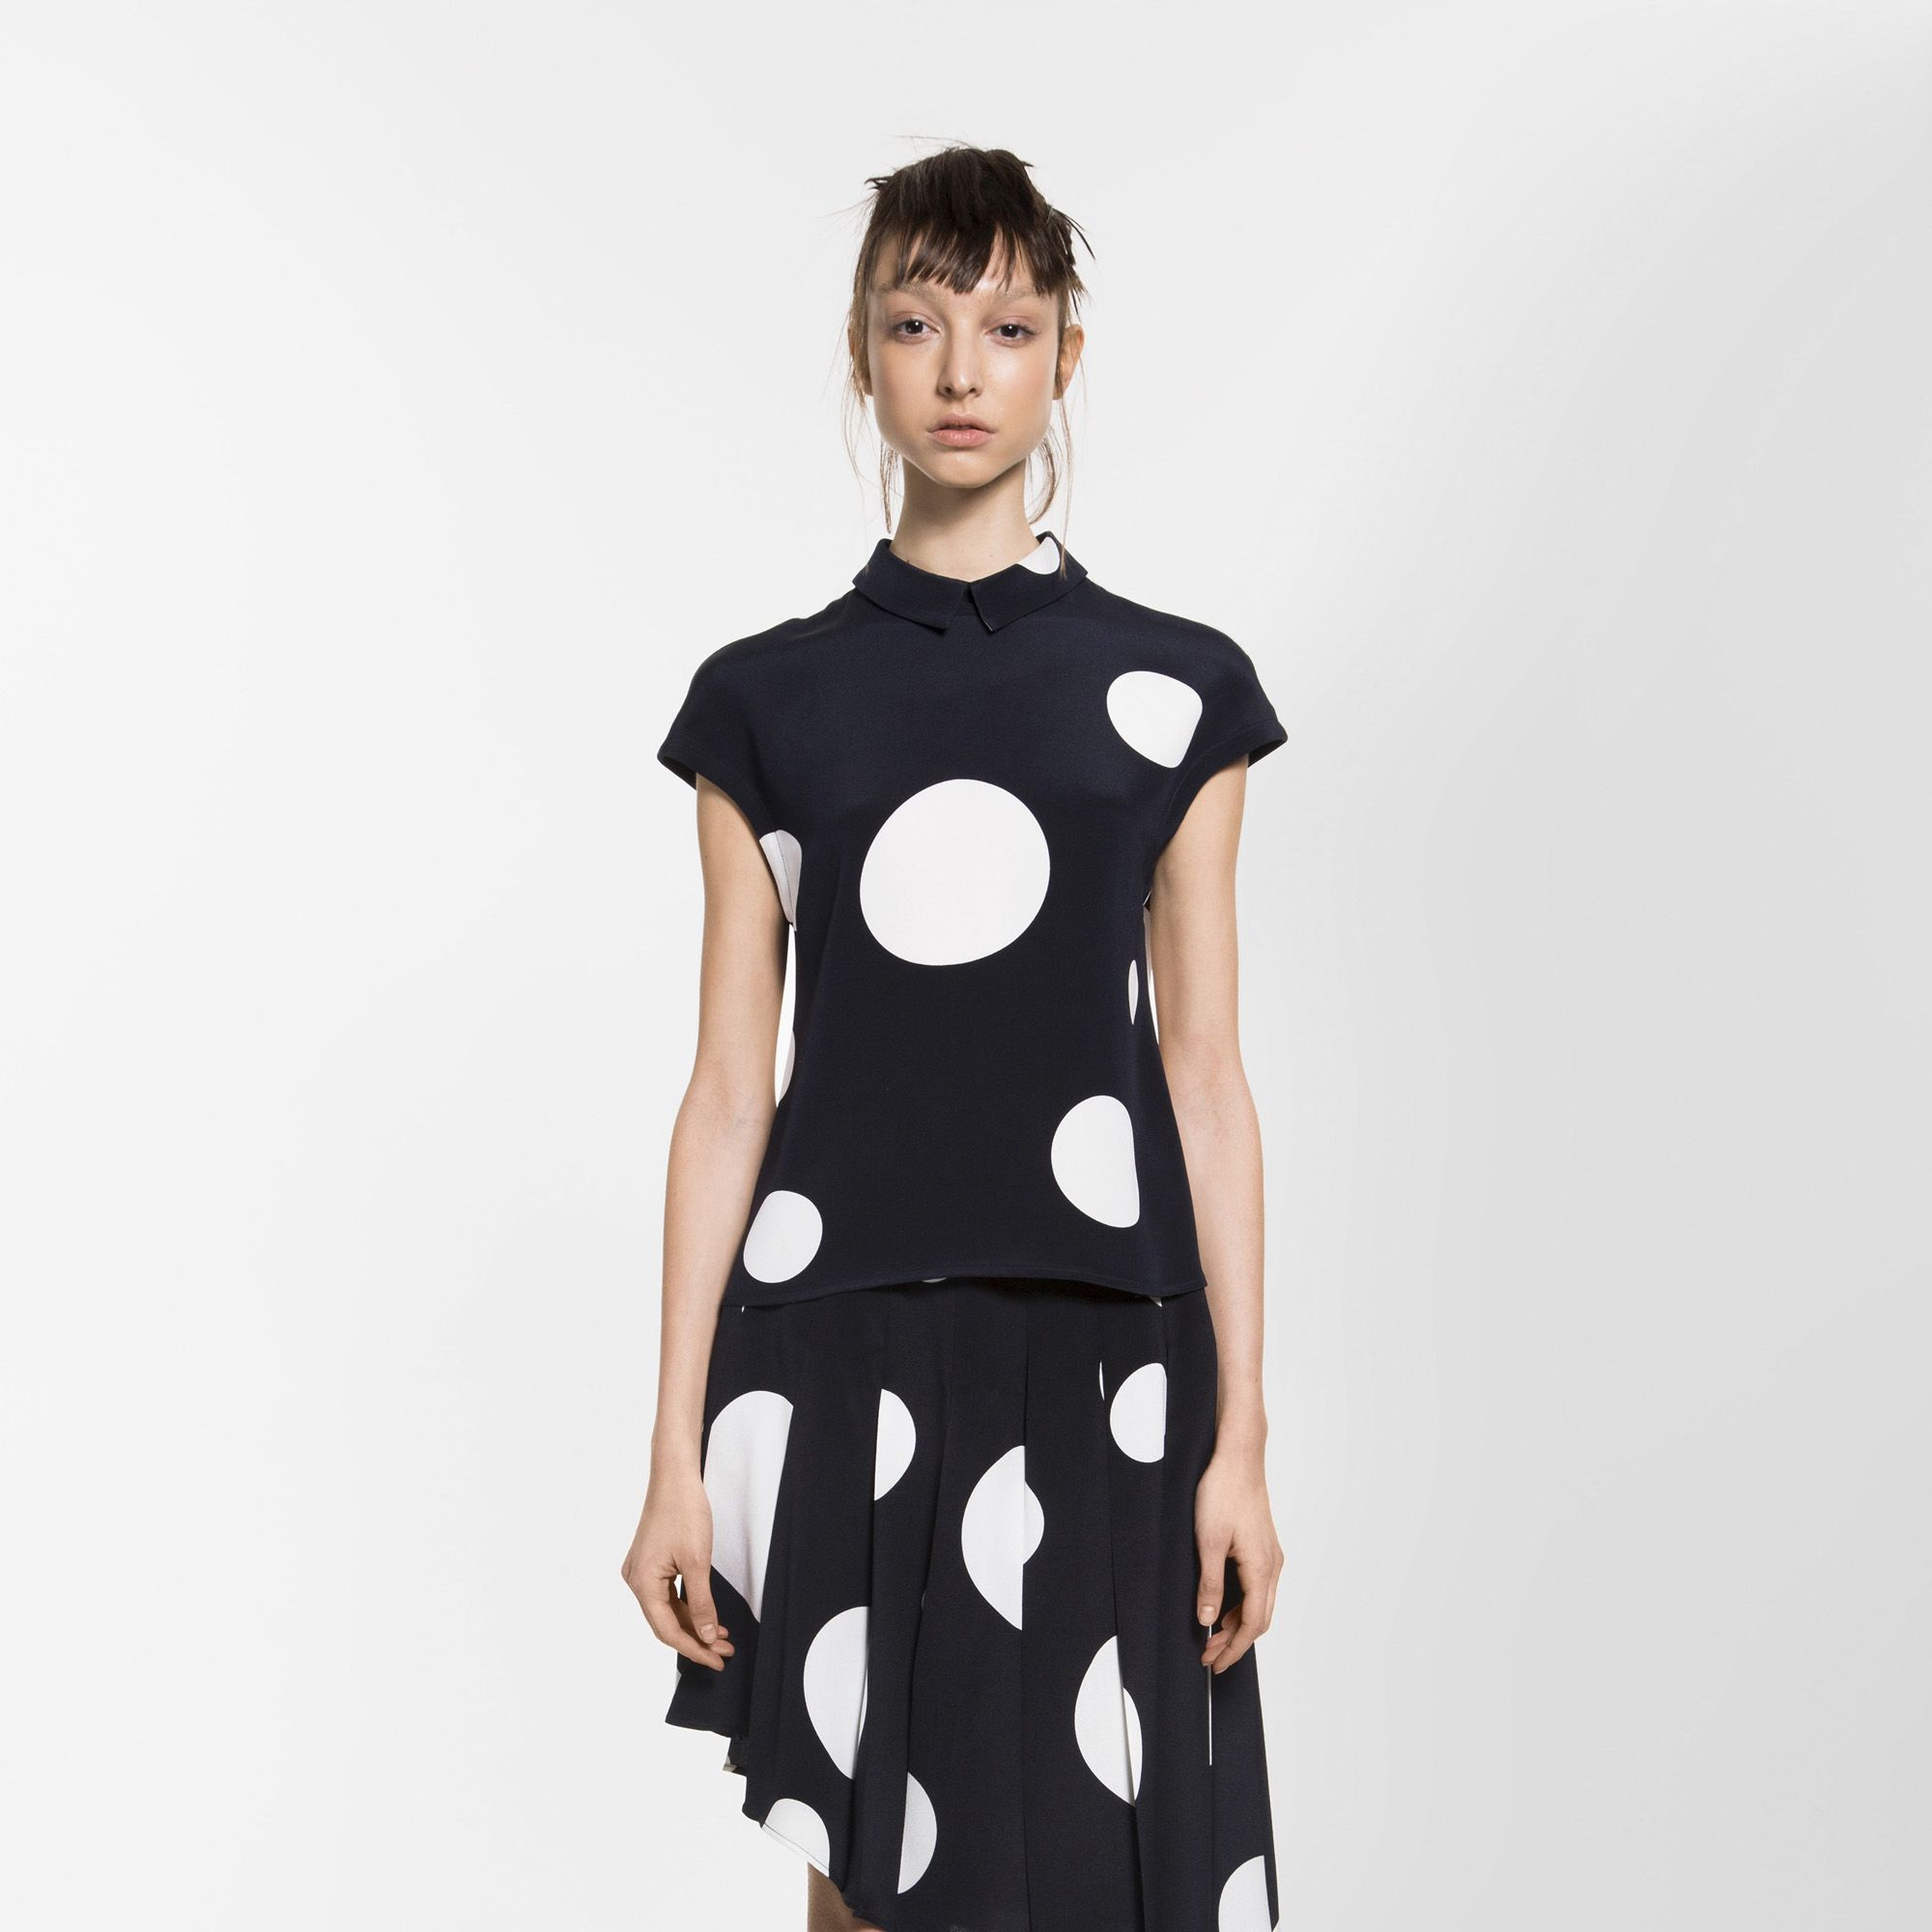 <p>The Korean-born, New York-based Oh's highly wearable—and often androgynous—pieces offer a refined elegance in relaxed, comfortable ensembles that blend form and functionality with luxe fabrics. </p>